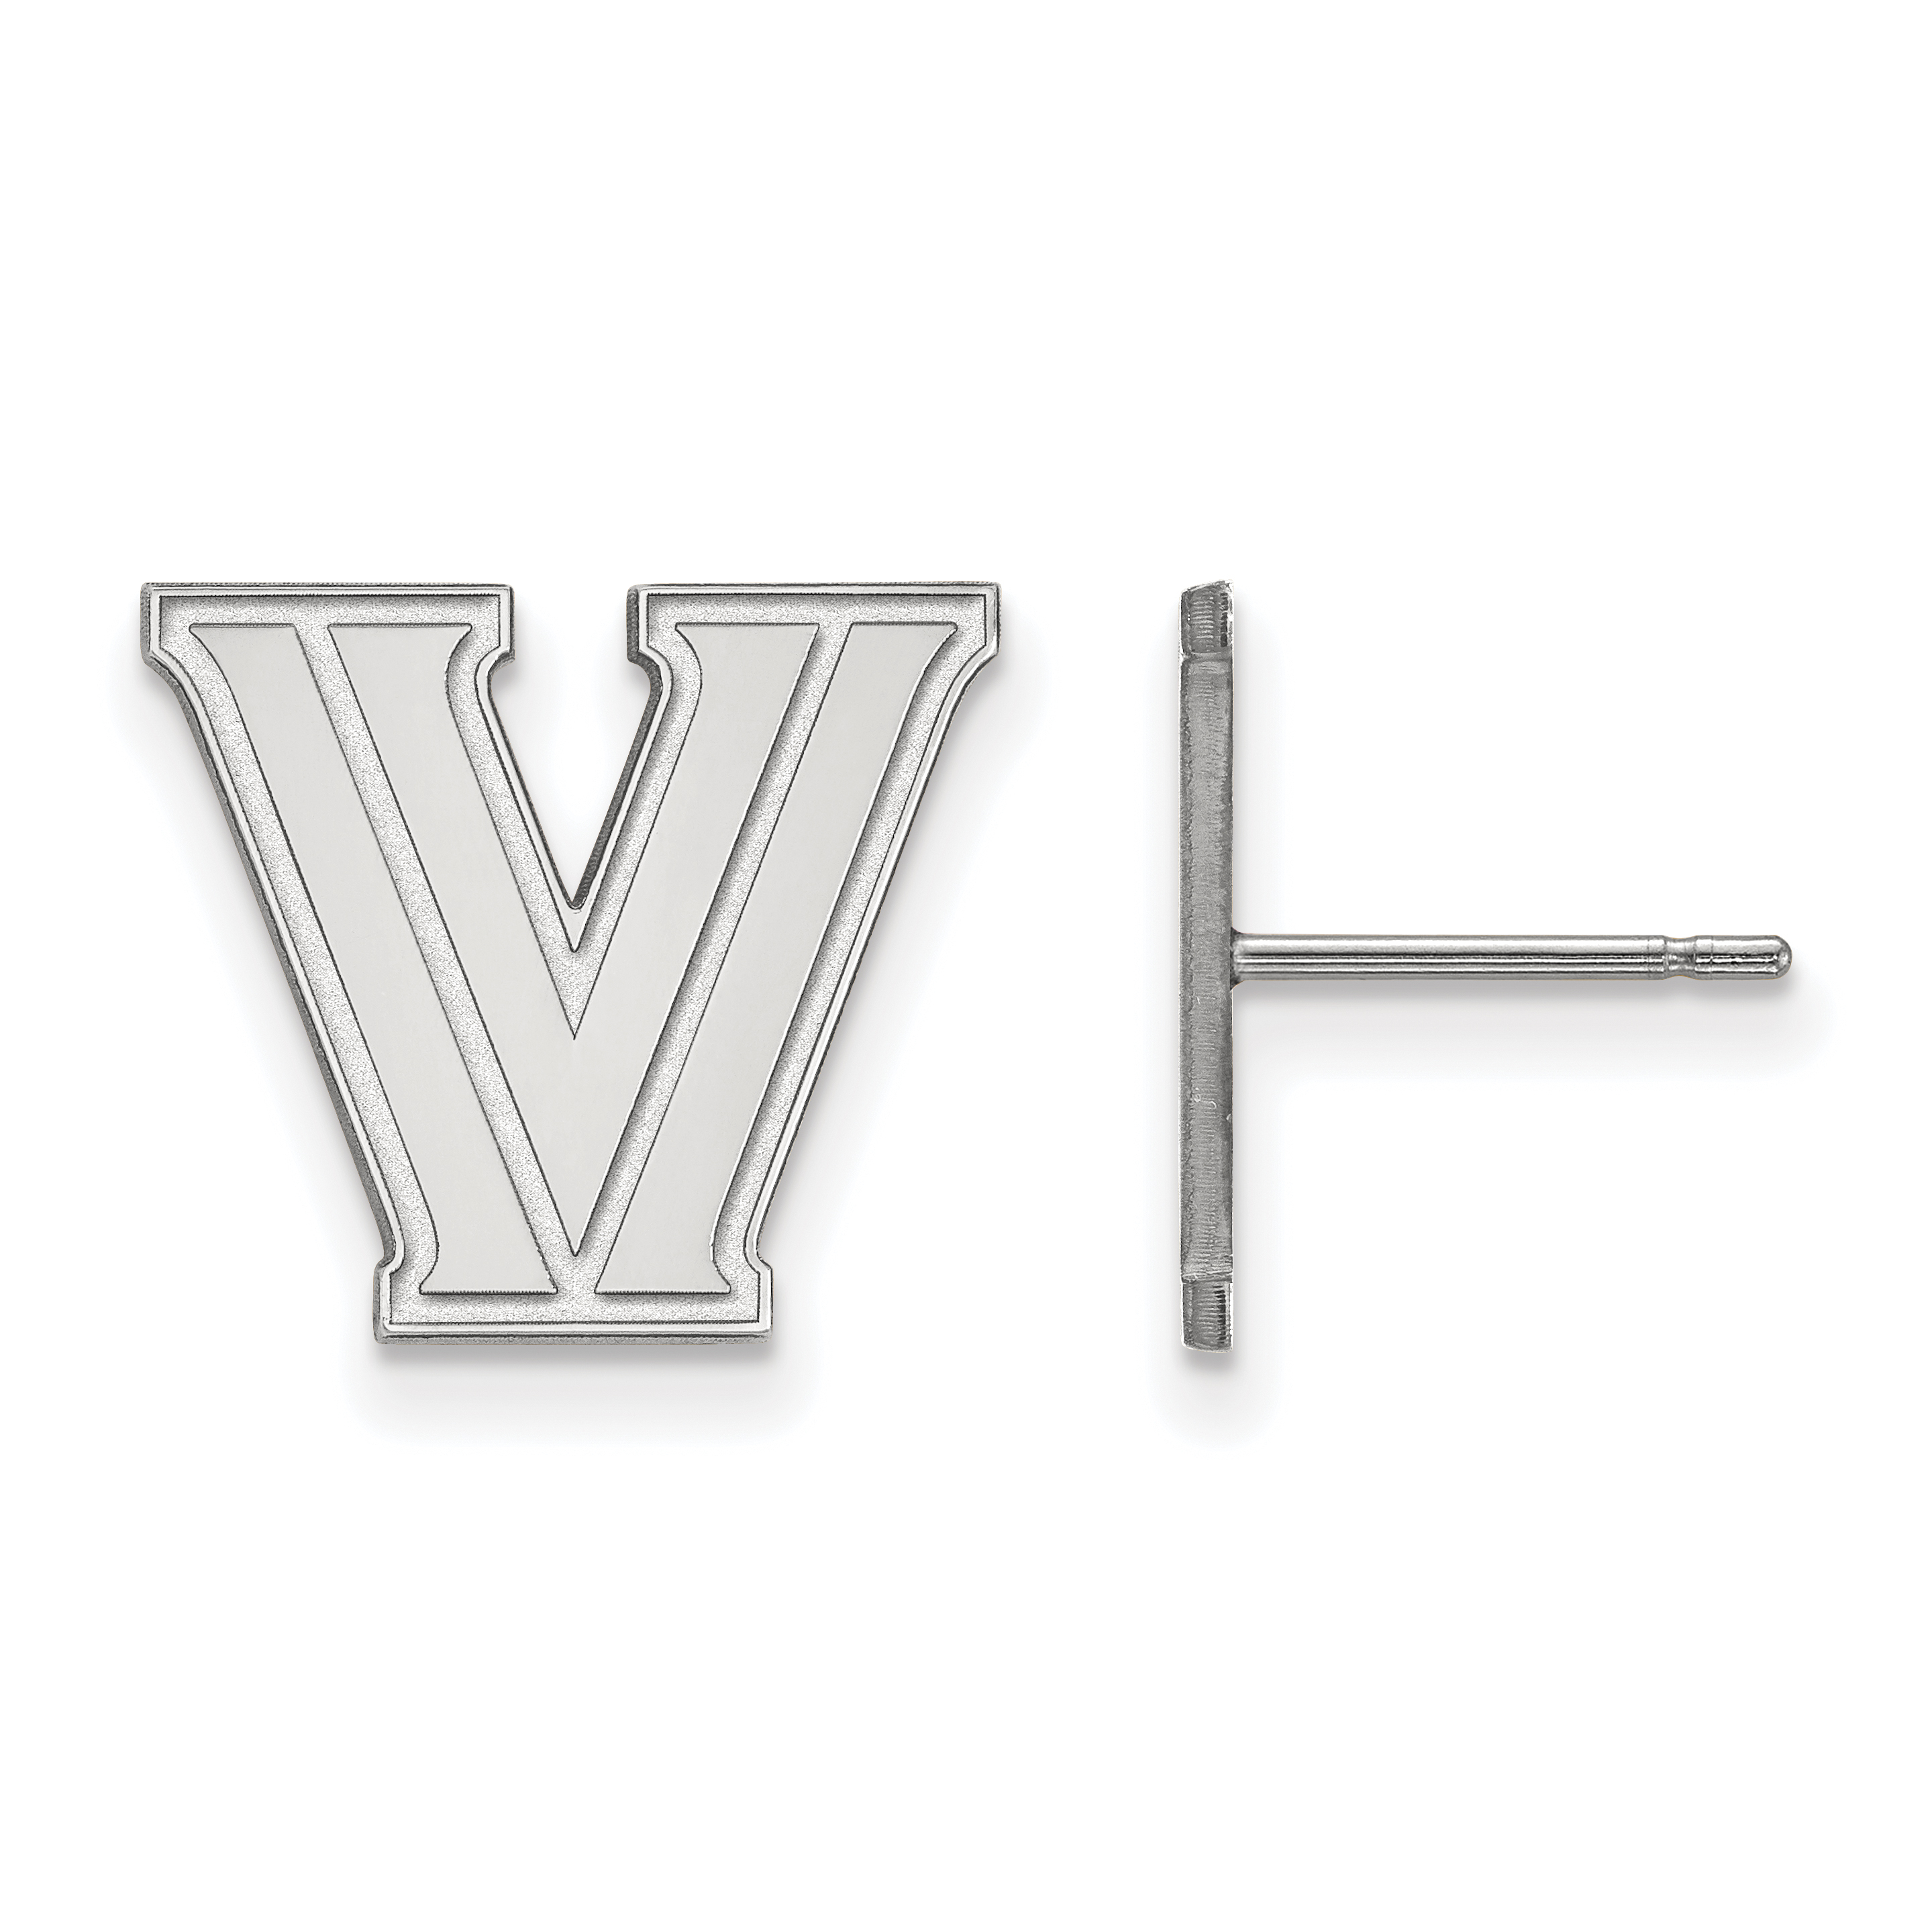 10kw Villanova University Small Post Earrings. weight: 1.74, Lengh: 13mm